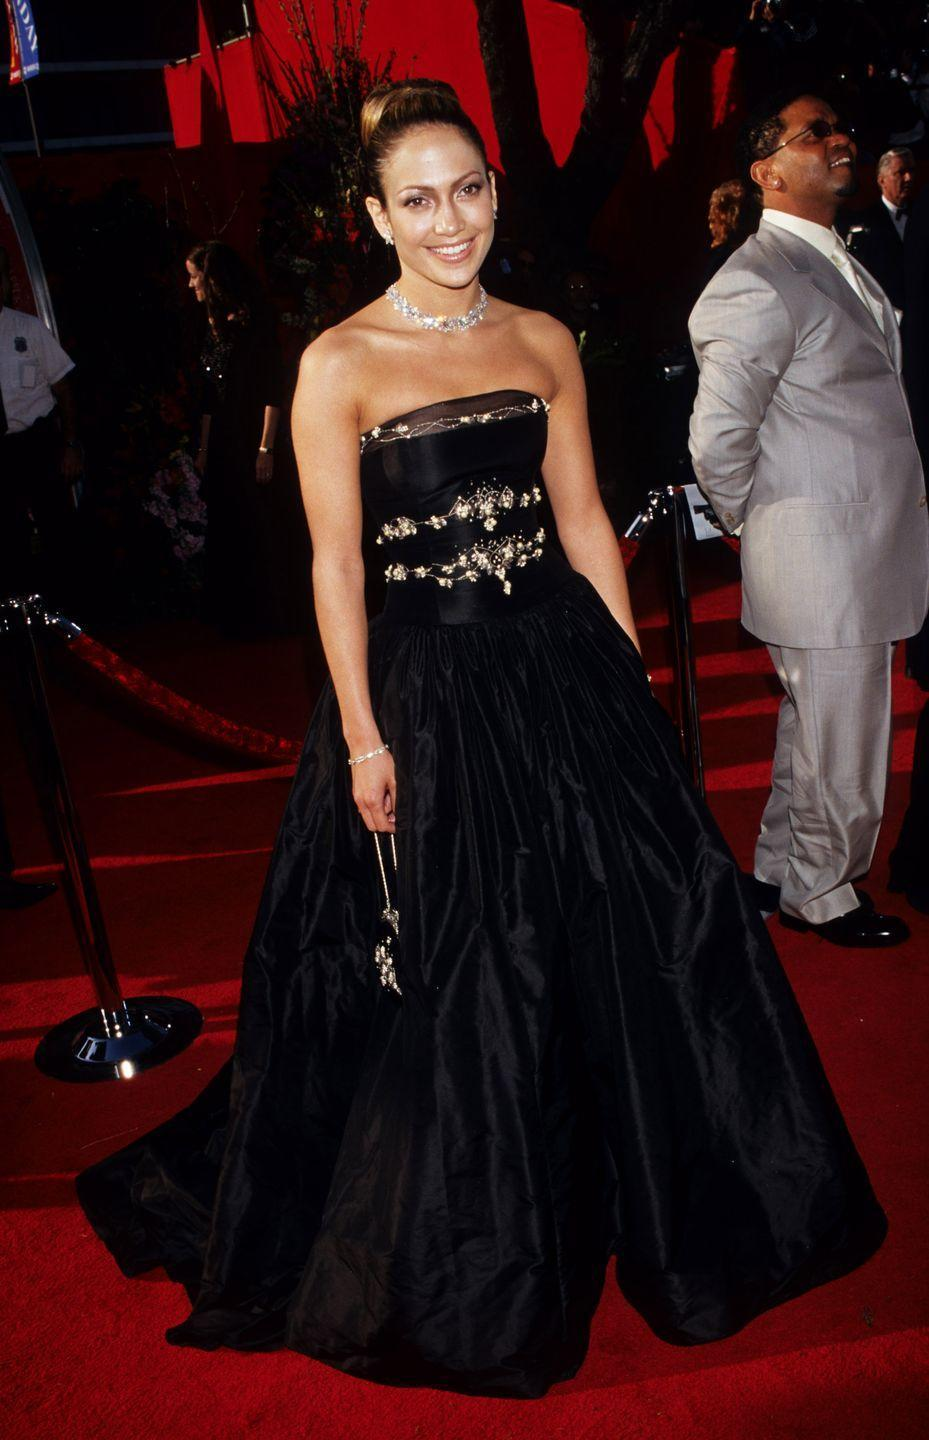 <p><strong>When: </strong>March 1999</p><p><strong>Where: </strong>The Academy Awards</p><p><strong>Wearing: </strong>Badgely Mishka</p>